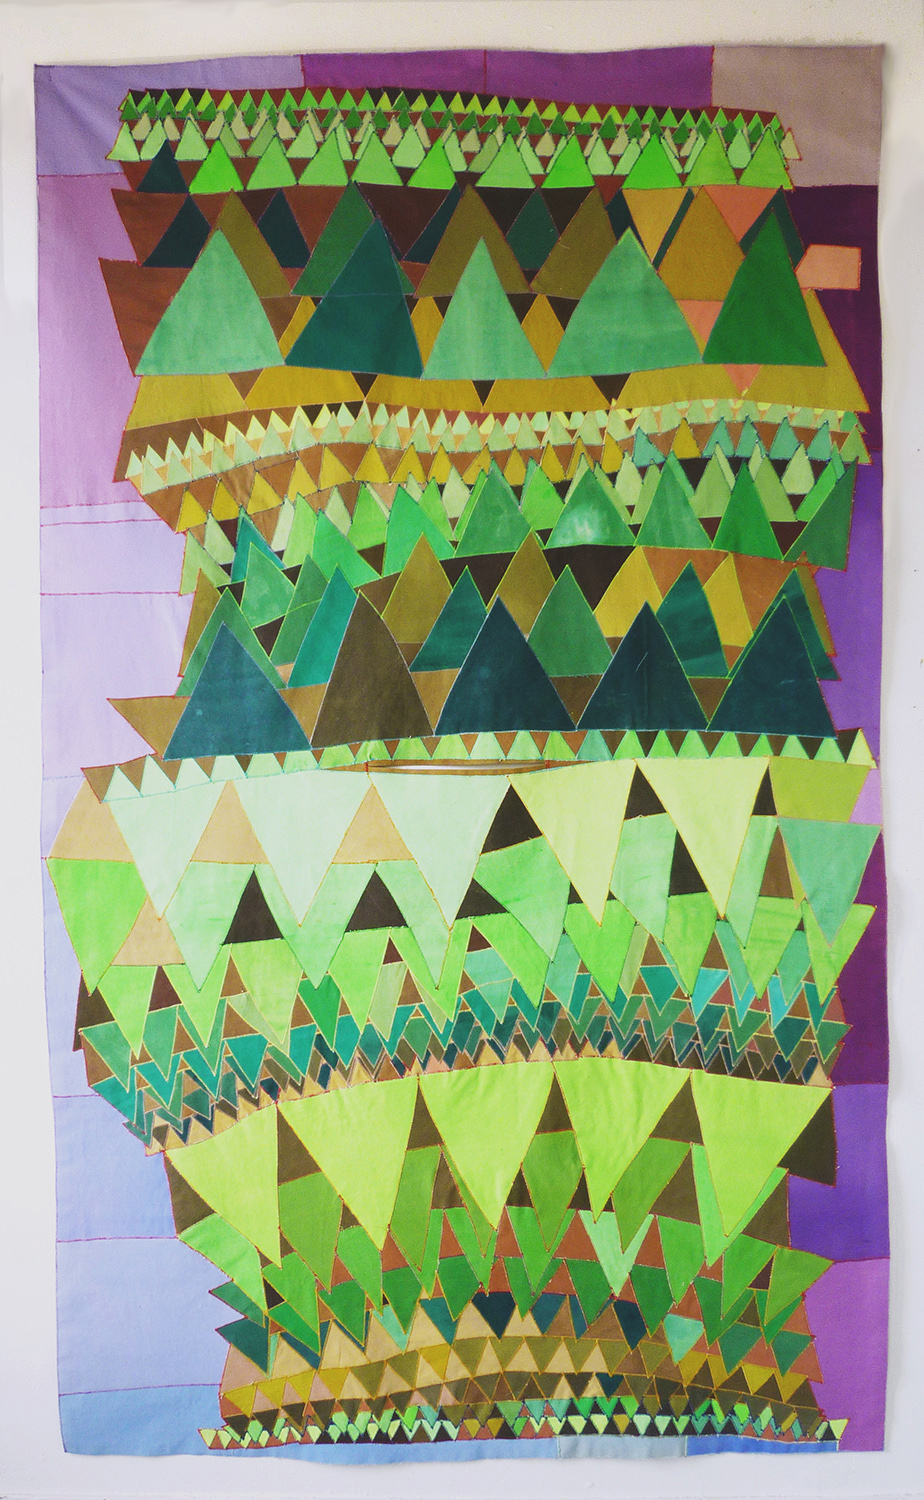 Poncho no 2, 2013    paint on canvas, sewing thread    93 x 55 1/2 in